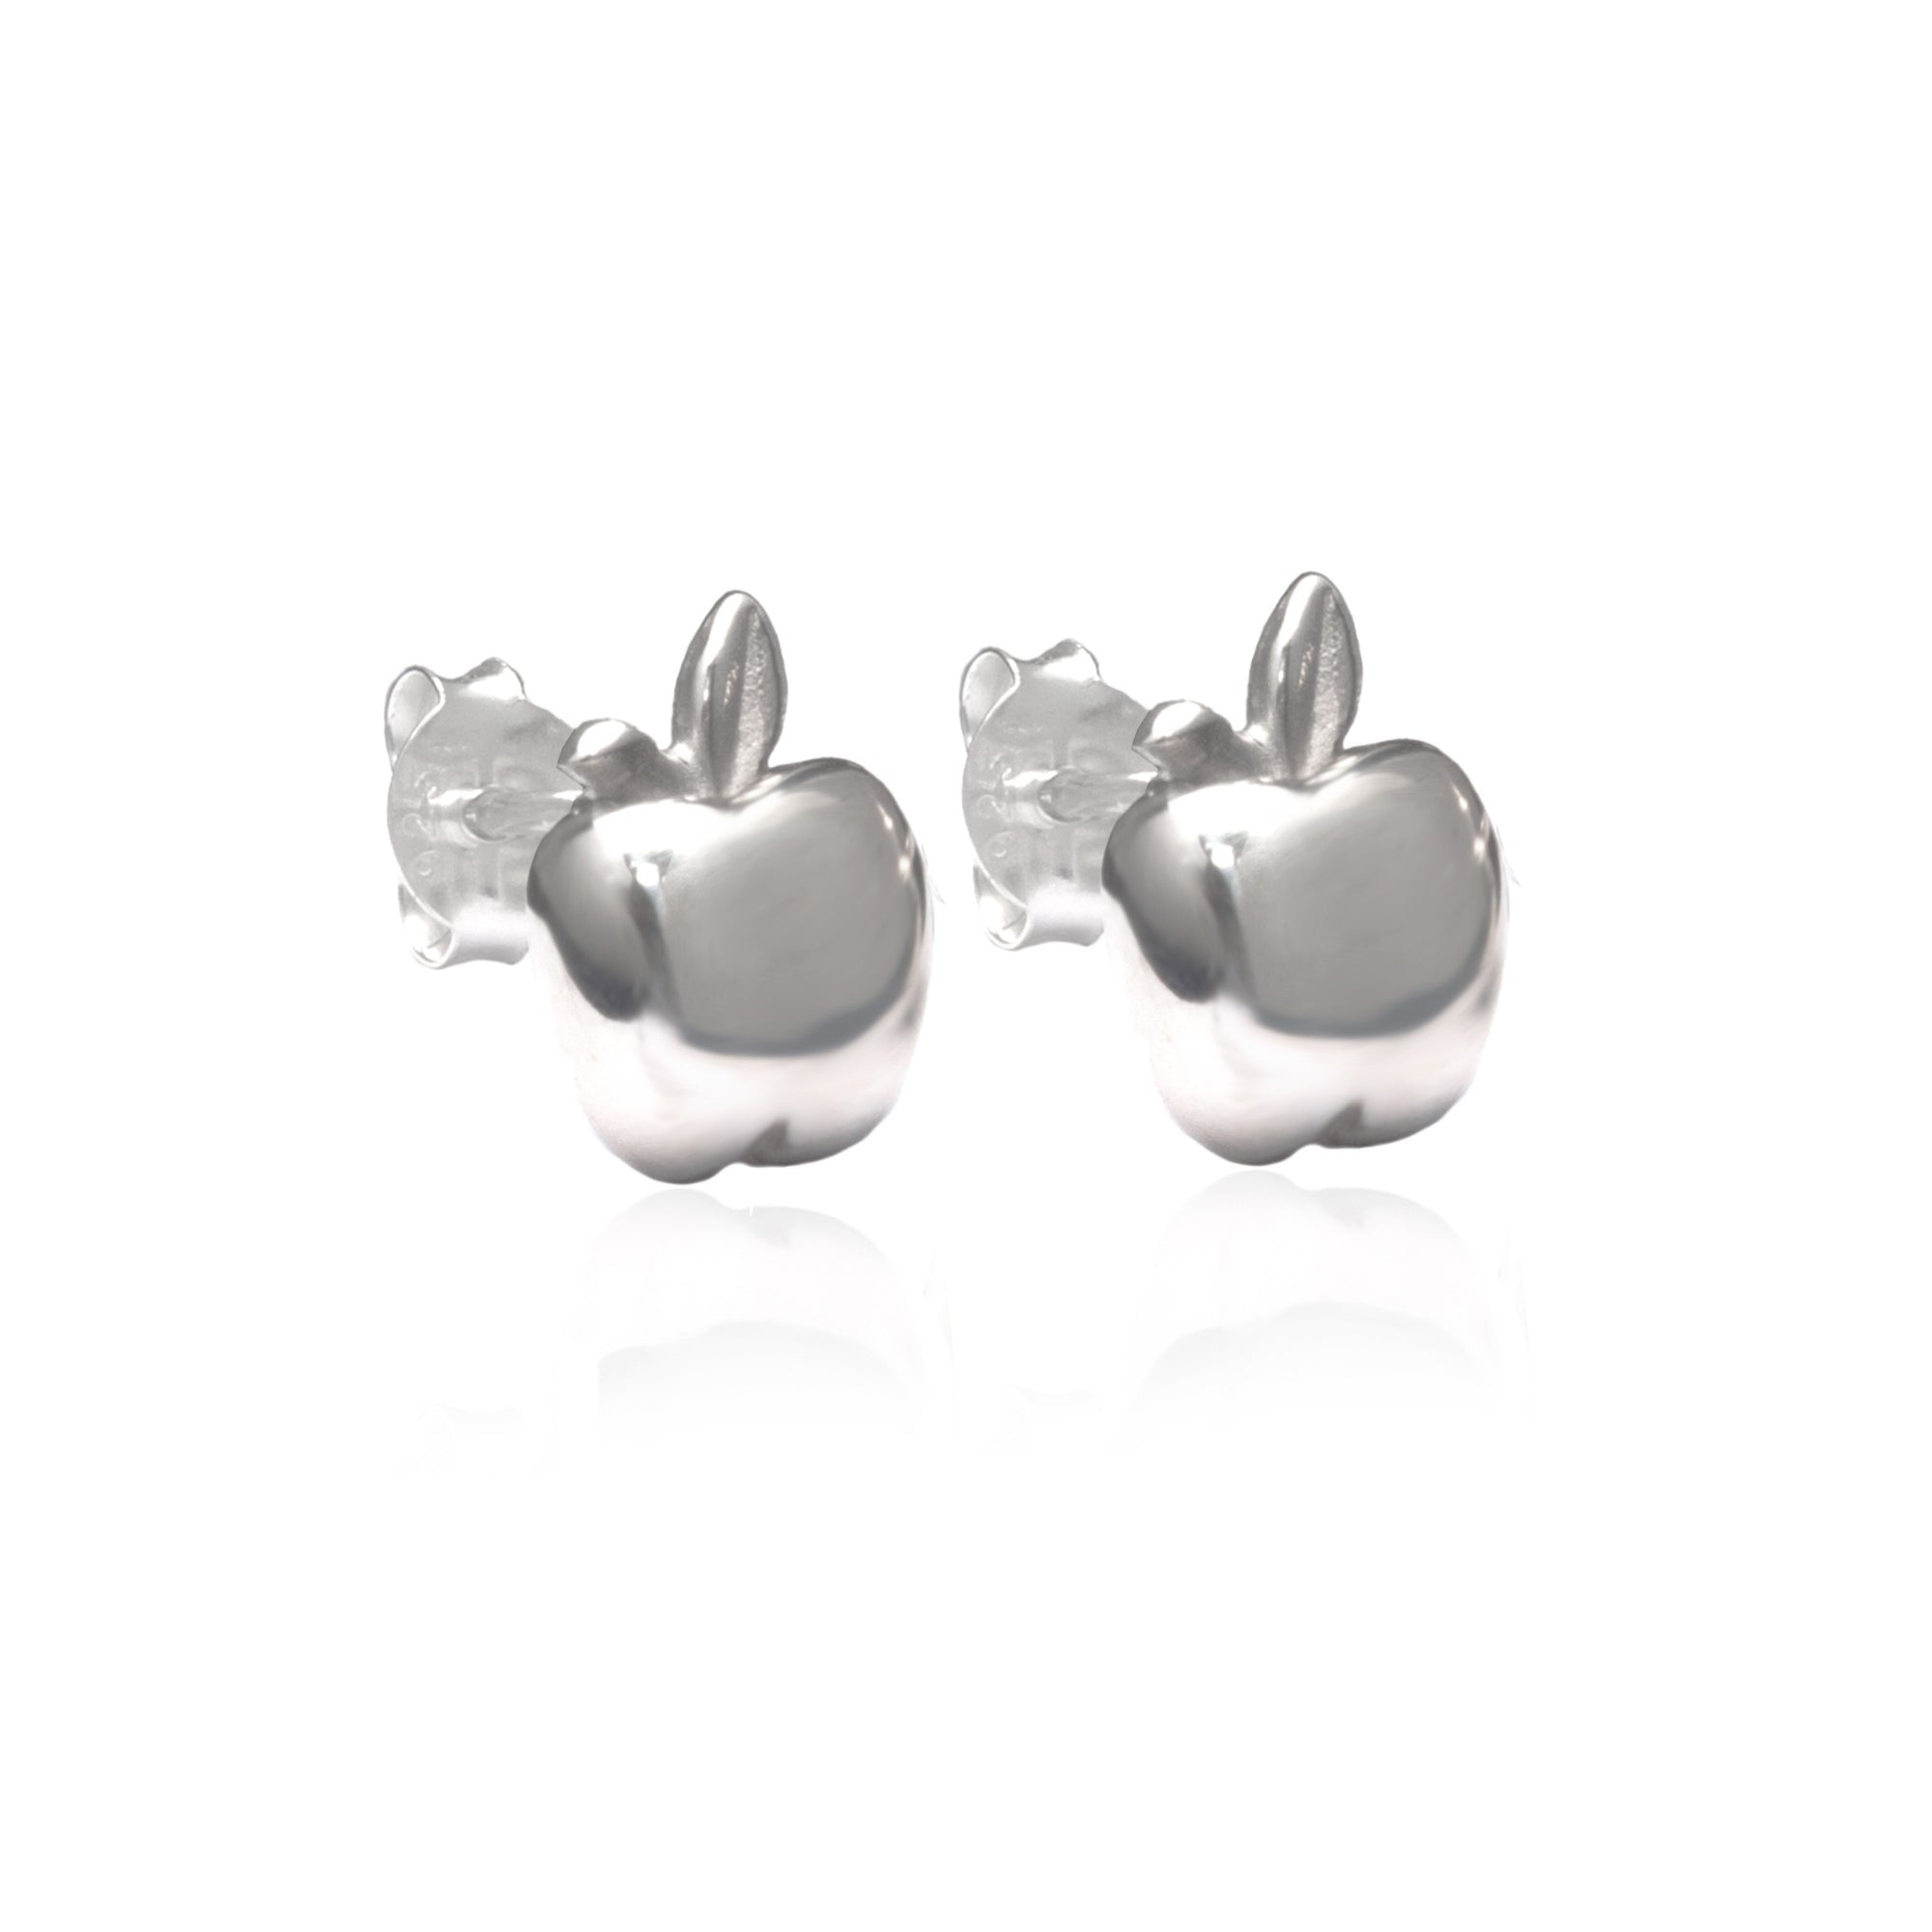 Luna & Rose - Apple of My Eye Earrings - Silver